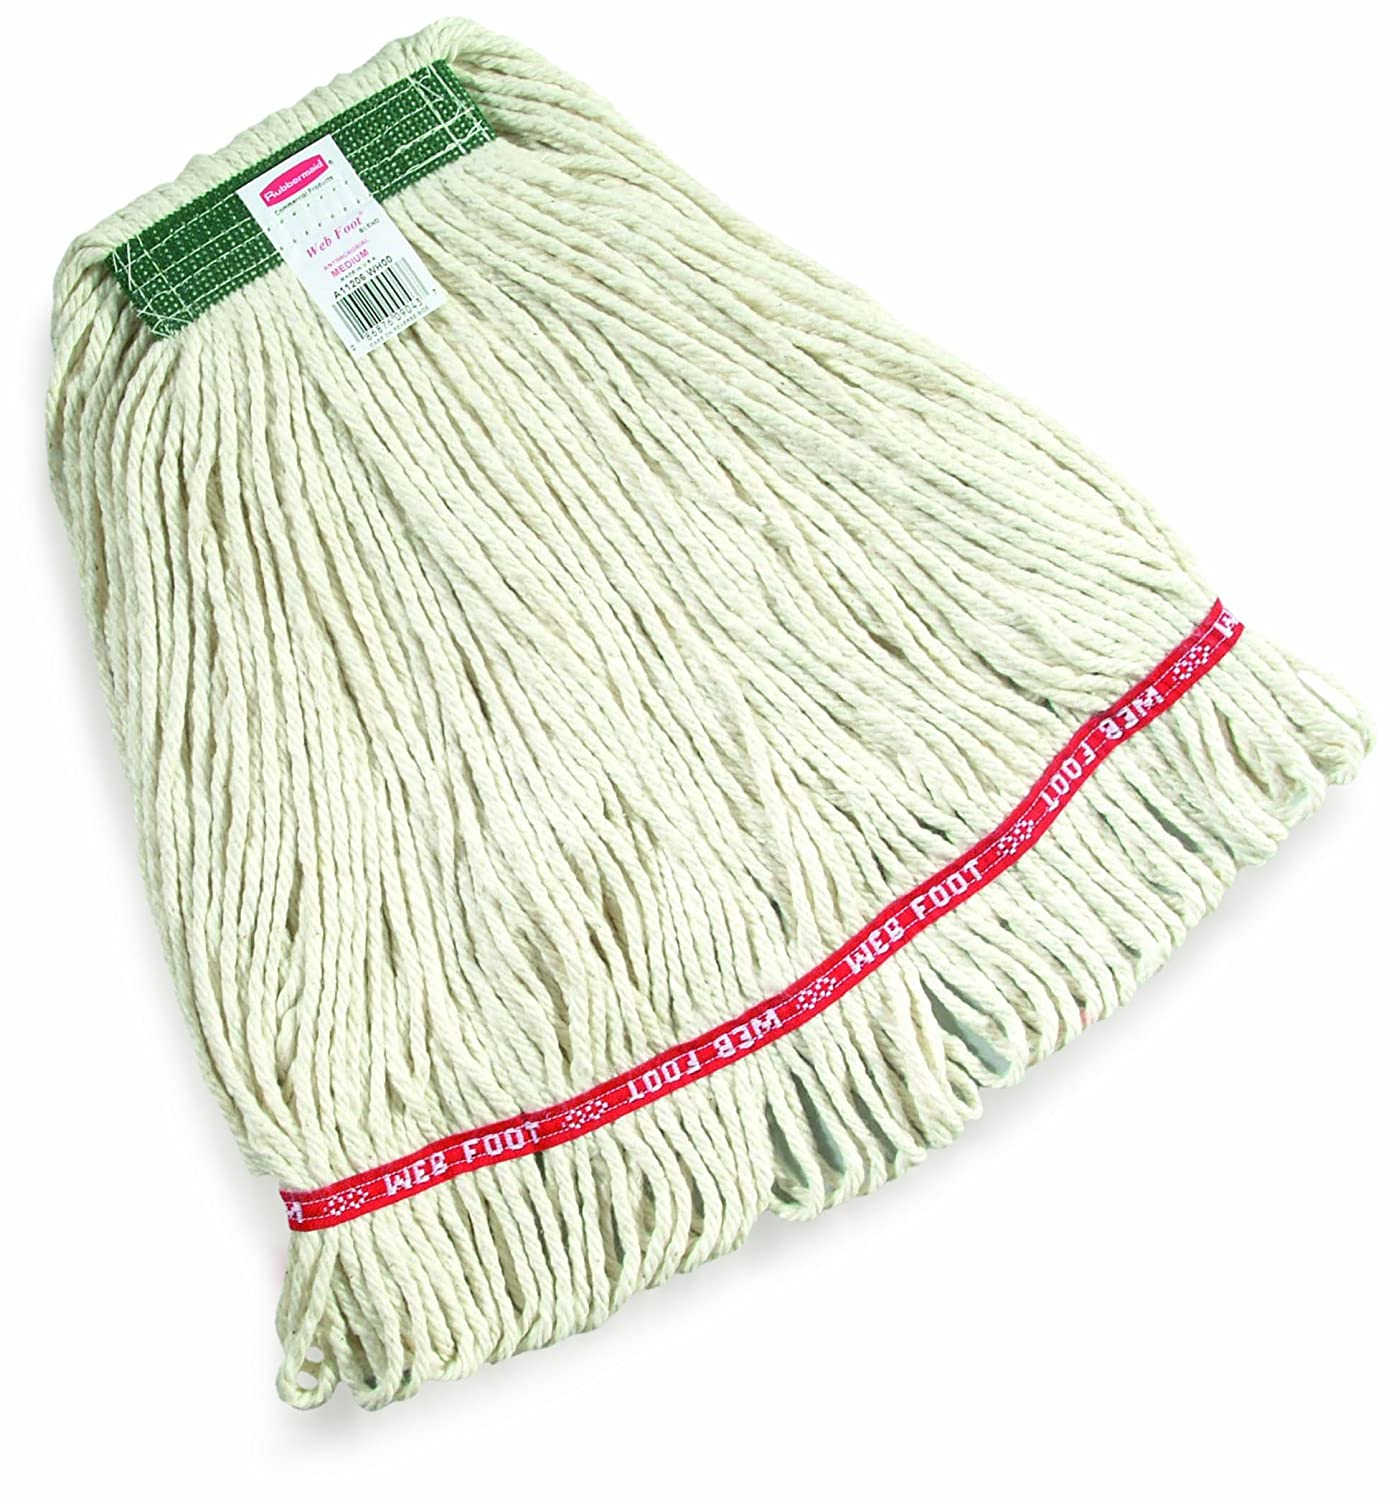 Rubbermaid A surprise price is Factory outlet realized Commercial Web Foot Blend Mop White FGA1 Wet Large